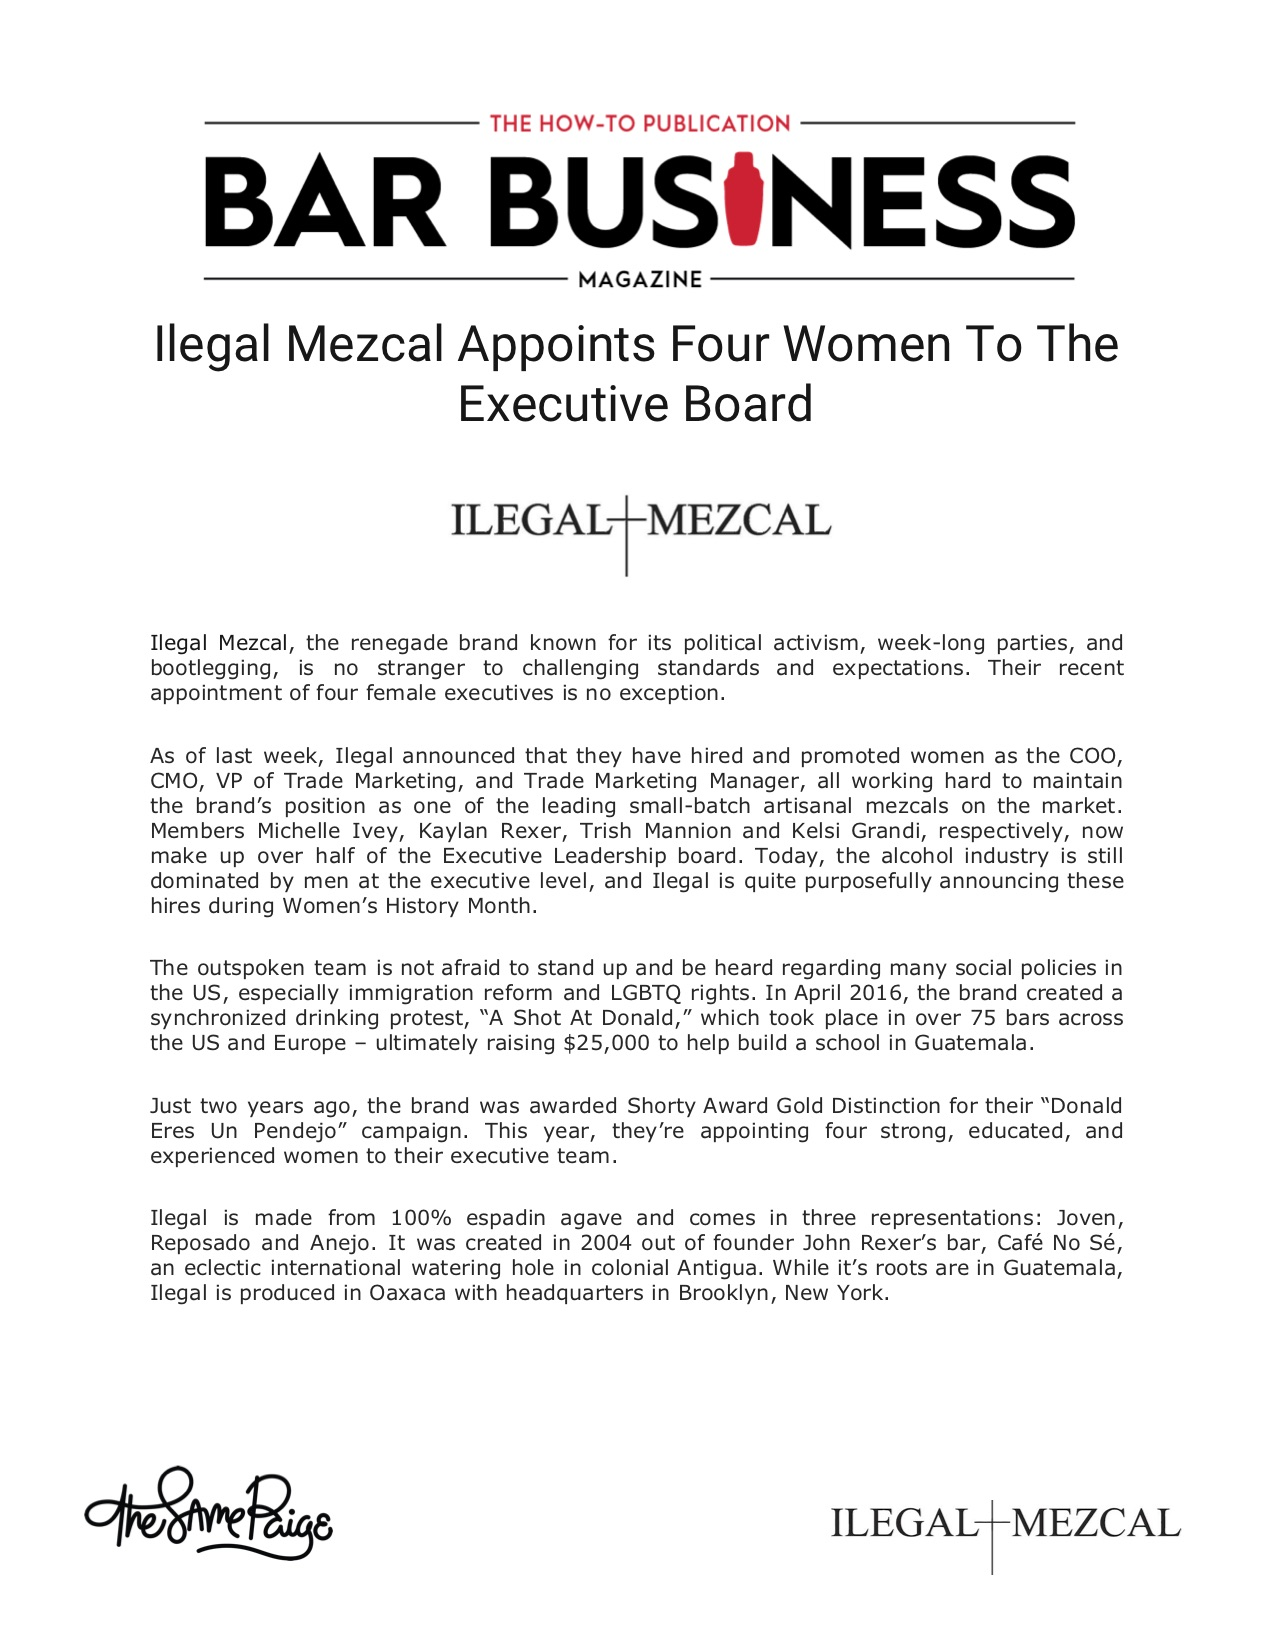 Bar Business Mag_Ilegal Mezcal_3_26_19.jpg